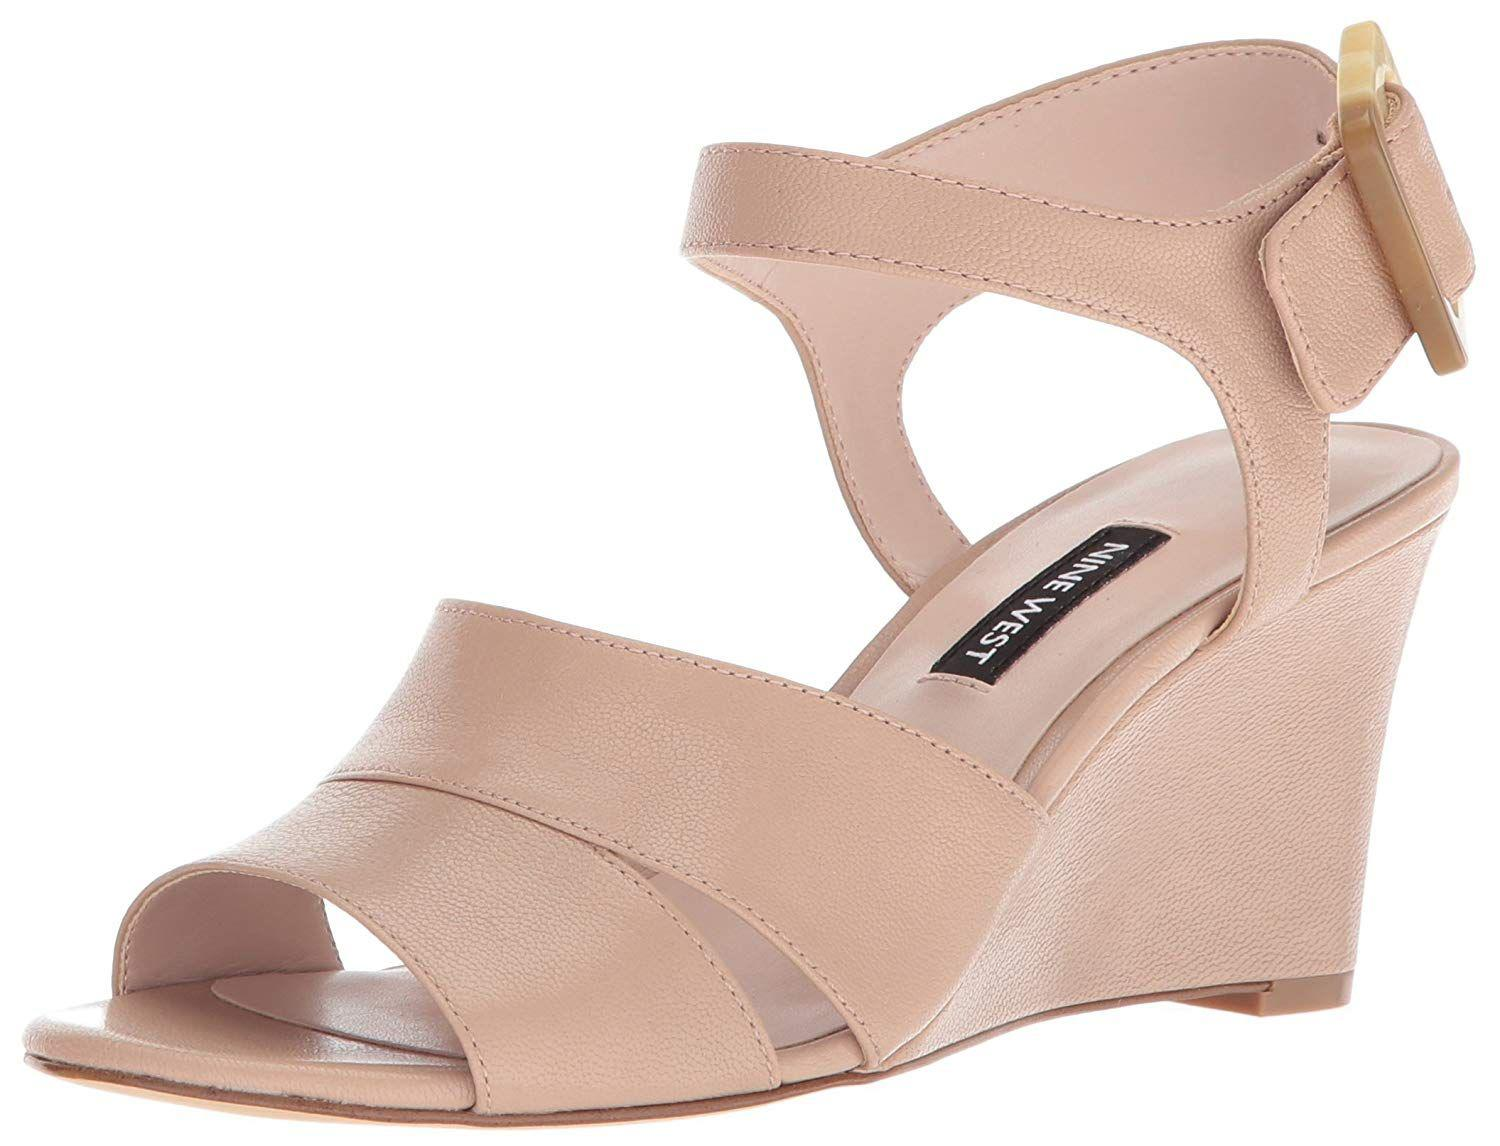 76f12a262e4 Lyst - Nine West Women s Vahan Leather Wedge Sandal in Brown